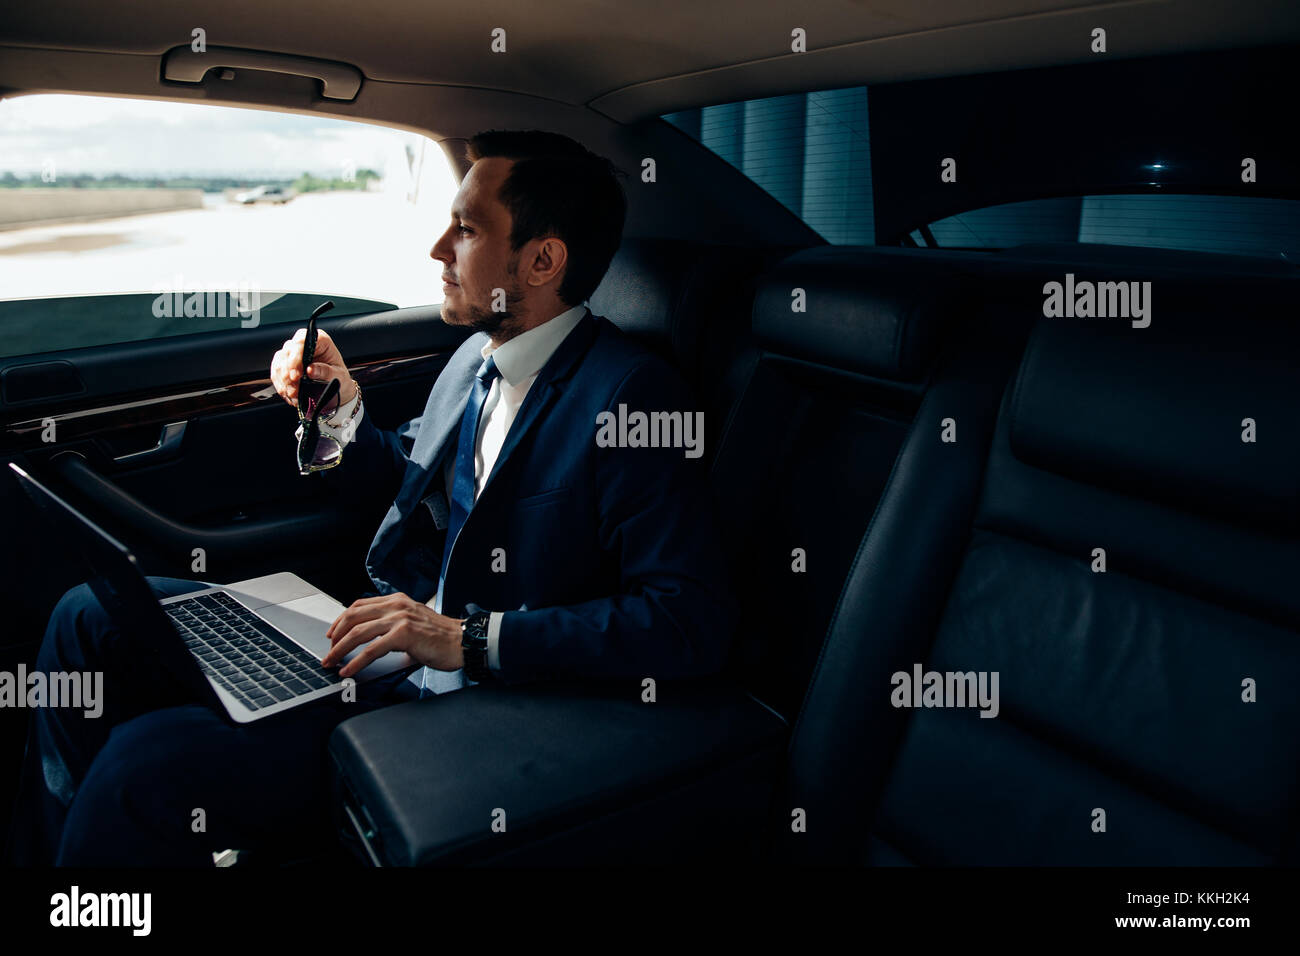 Serious businessman in a car with laptop - Stock Image